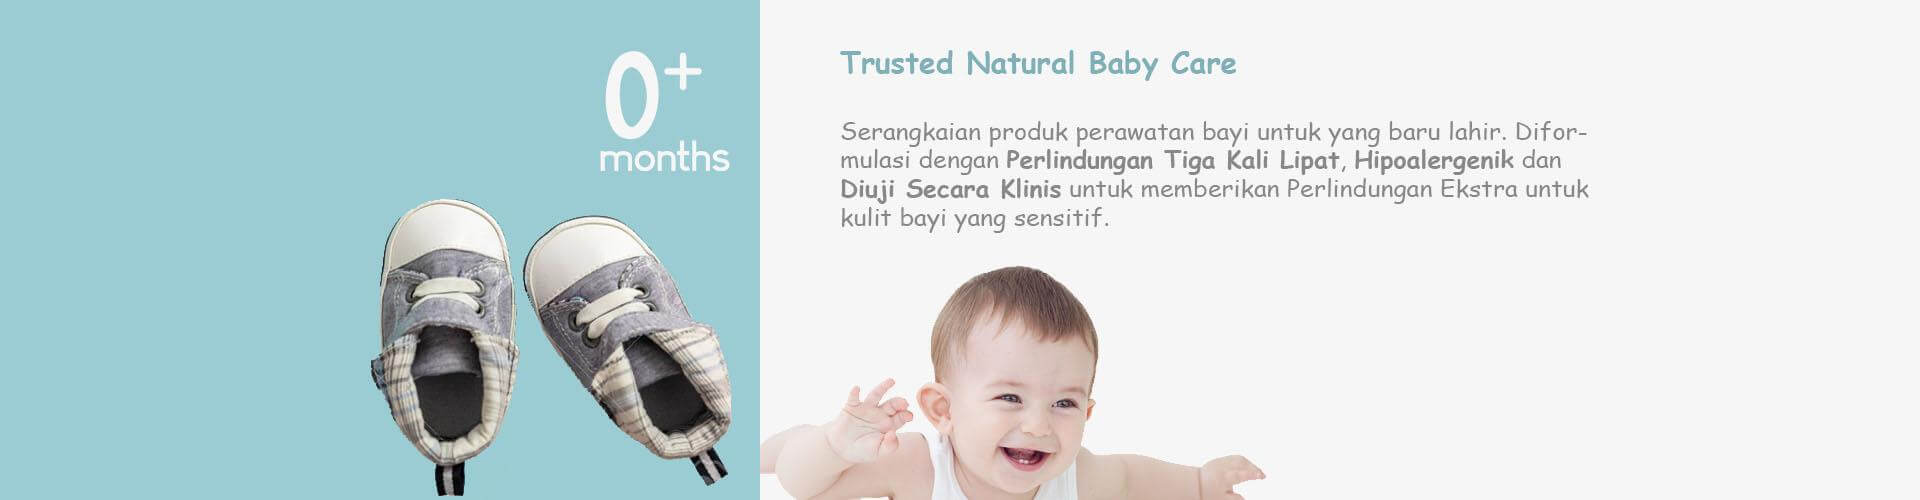 Trusted Natural Baby care